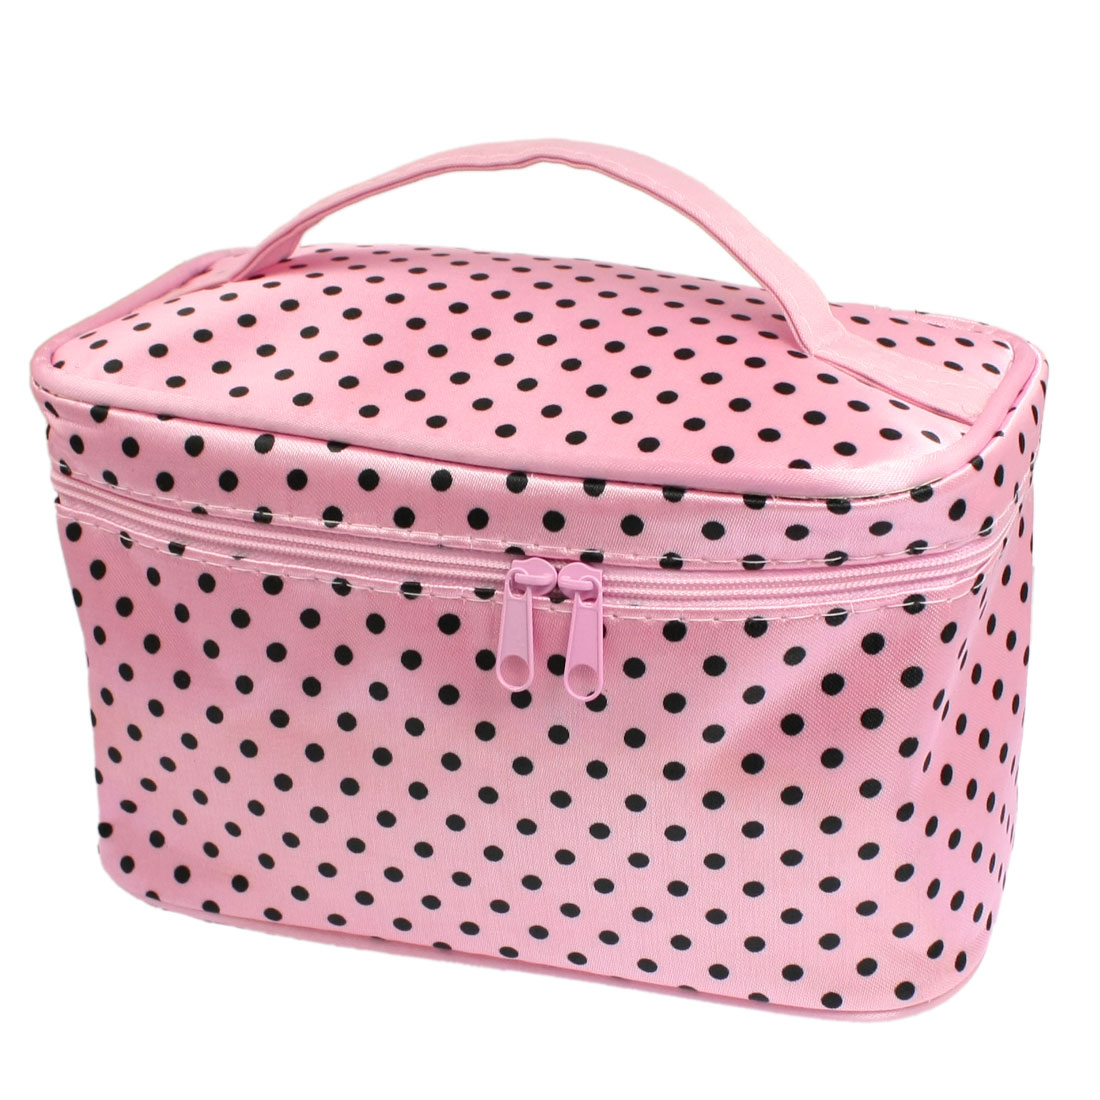 Ladies Dots Pattern Zippered Closure Mirror Cosmetic Pouch Bag Case Pink